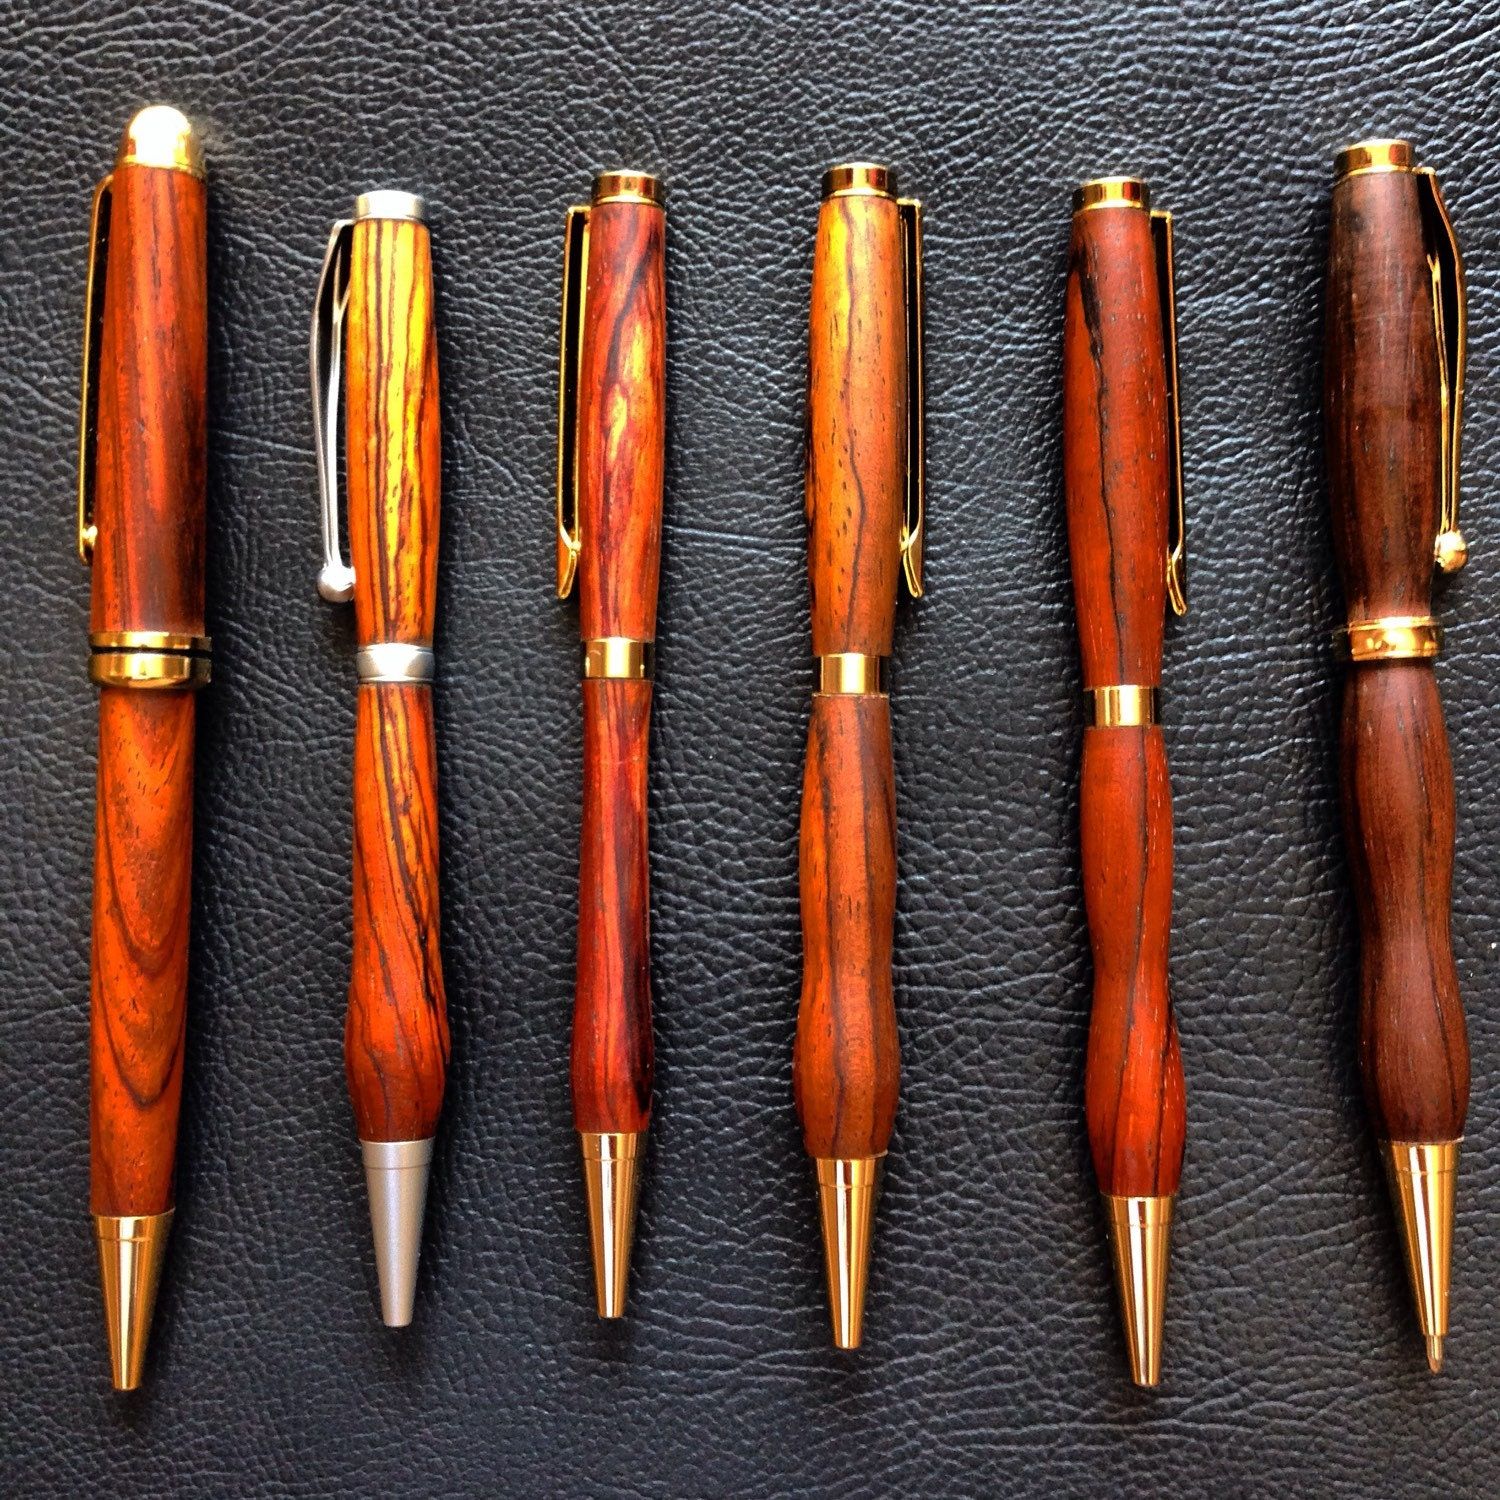 handmade wooden pens made wooden pens carved per order as these are 7882